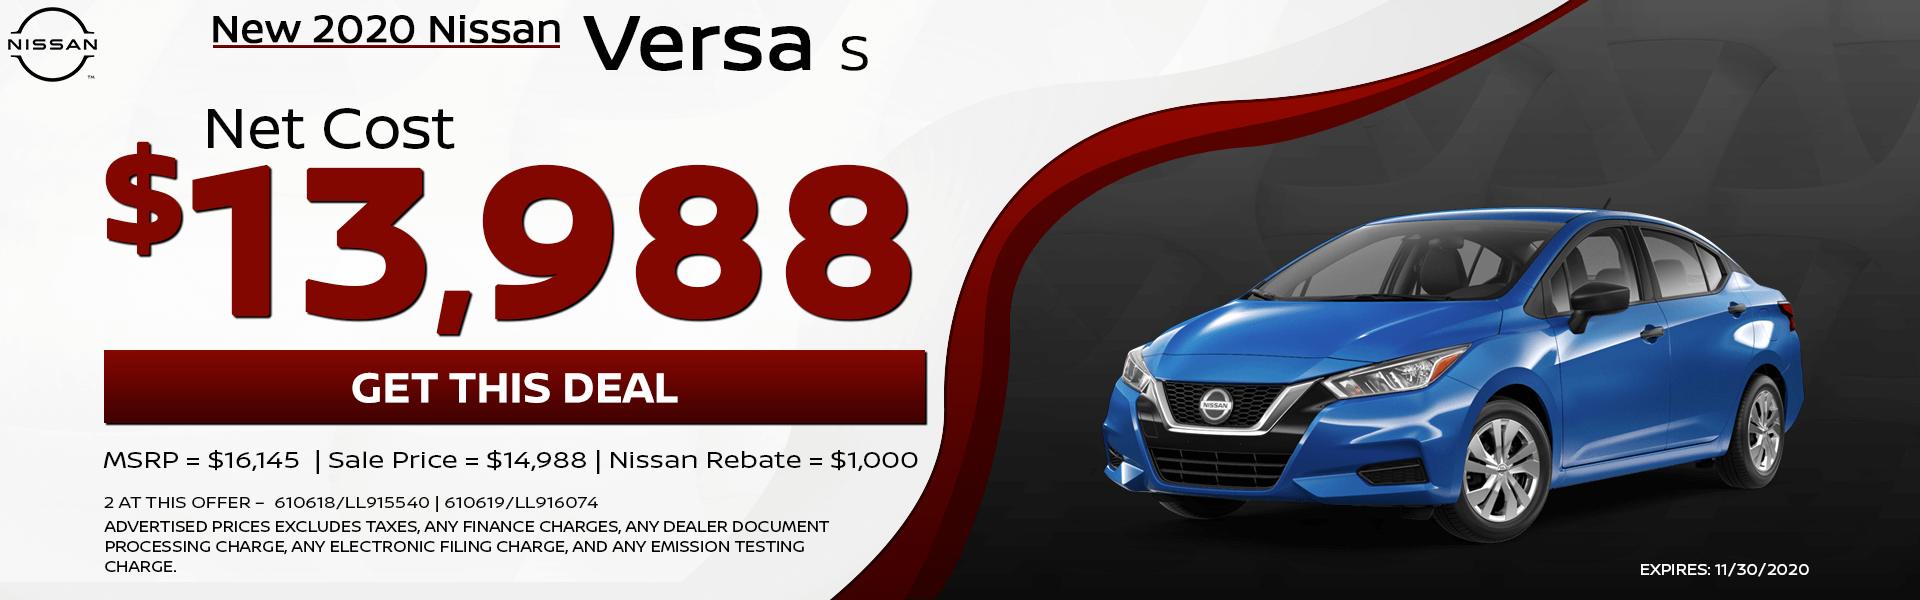 New Used Cars For Sale In Los Angeles Ross Nissan Dealership